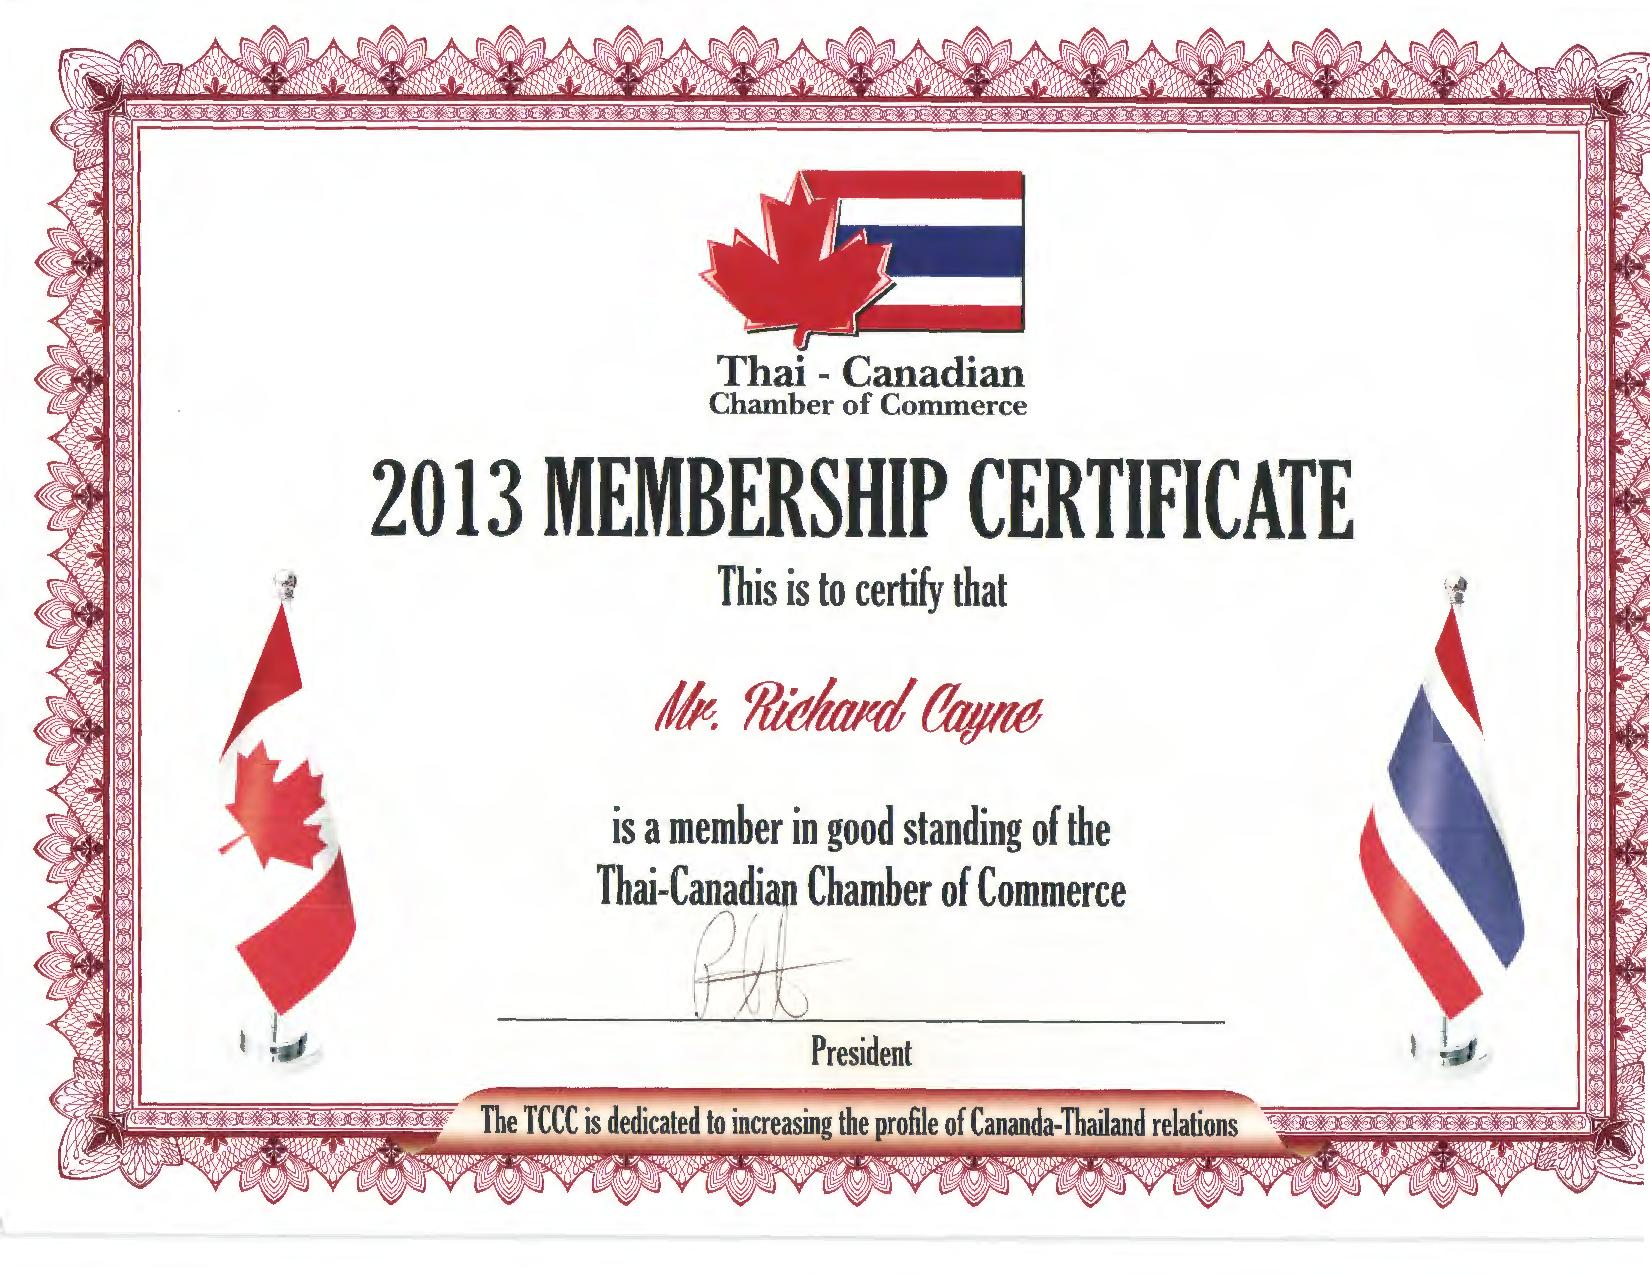 Richard cayne canadian chamber of commerce thailand for Canadian chambre of commerce